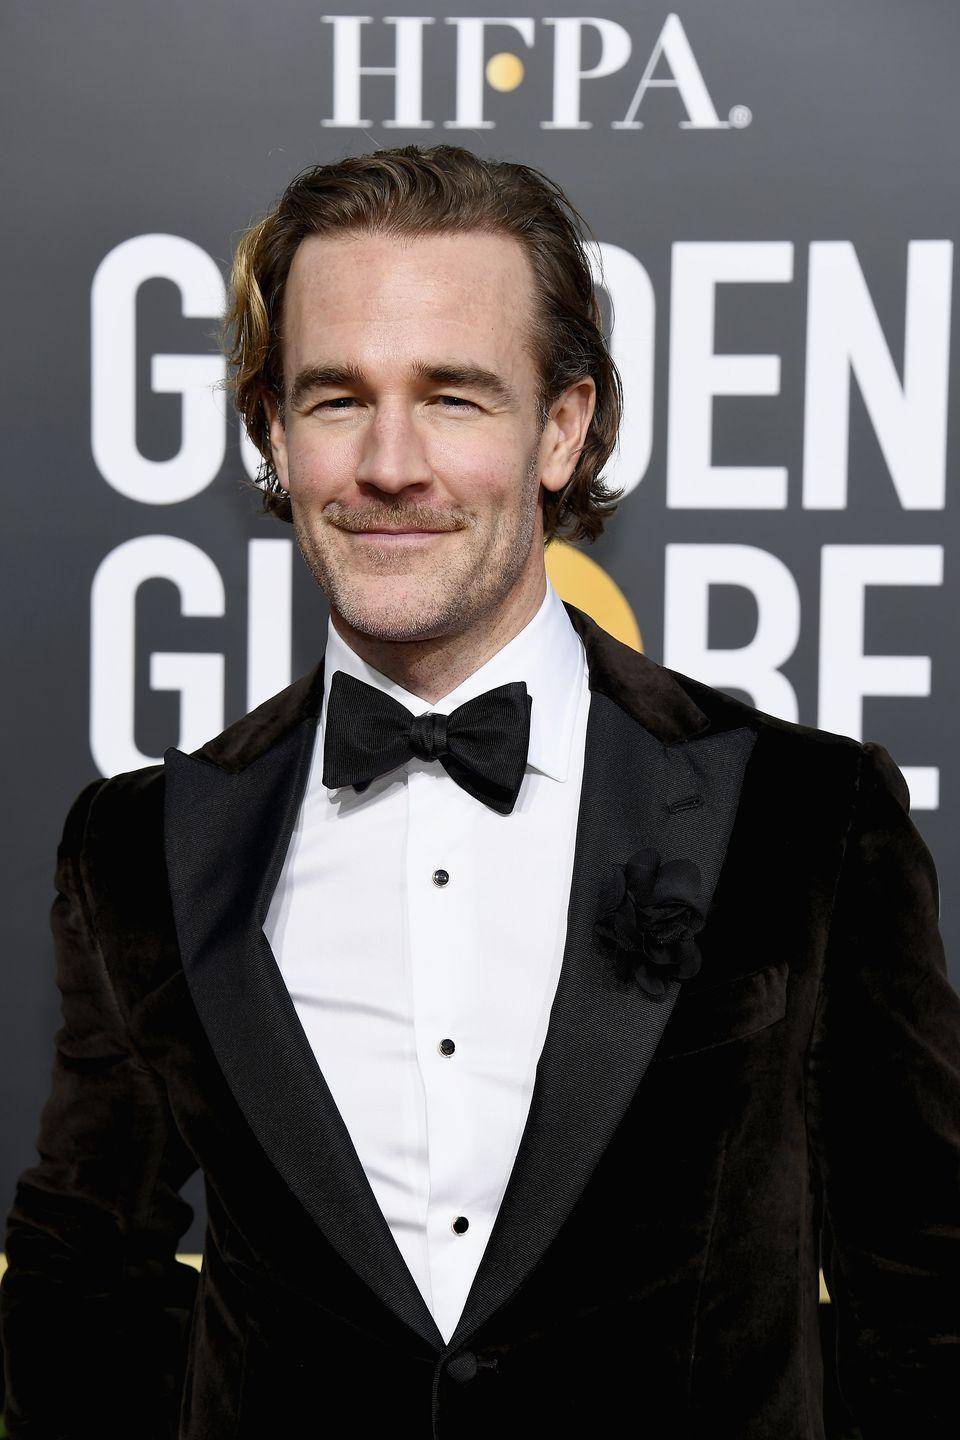 <p>Van Der Beek and his great eyebrows are still making Hollywood moves. He had a role on the hit FX show <em>Pose</em>, and played DJ Diplo in the comedy series <em>What Would Diplo Do?</em> over on Viceland. </p>